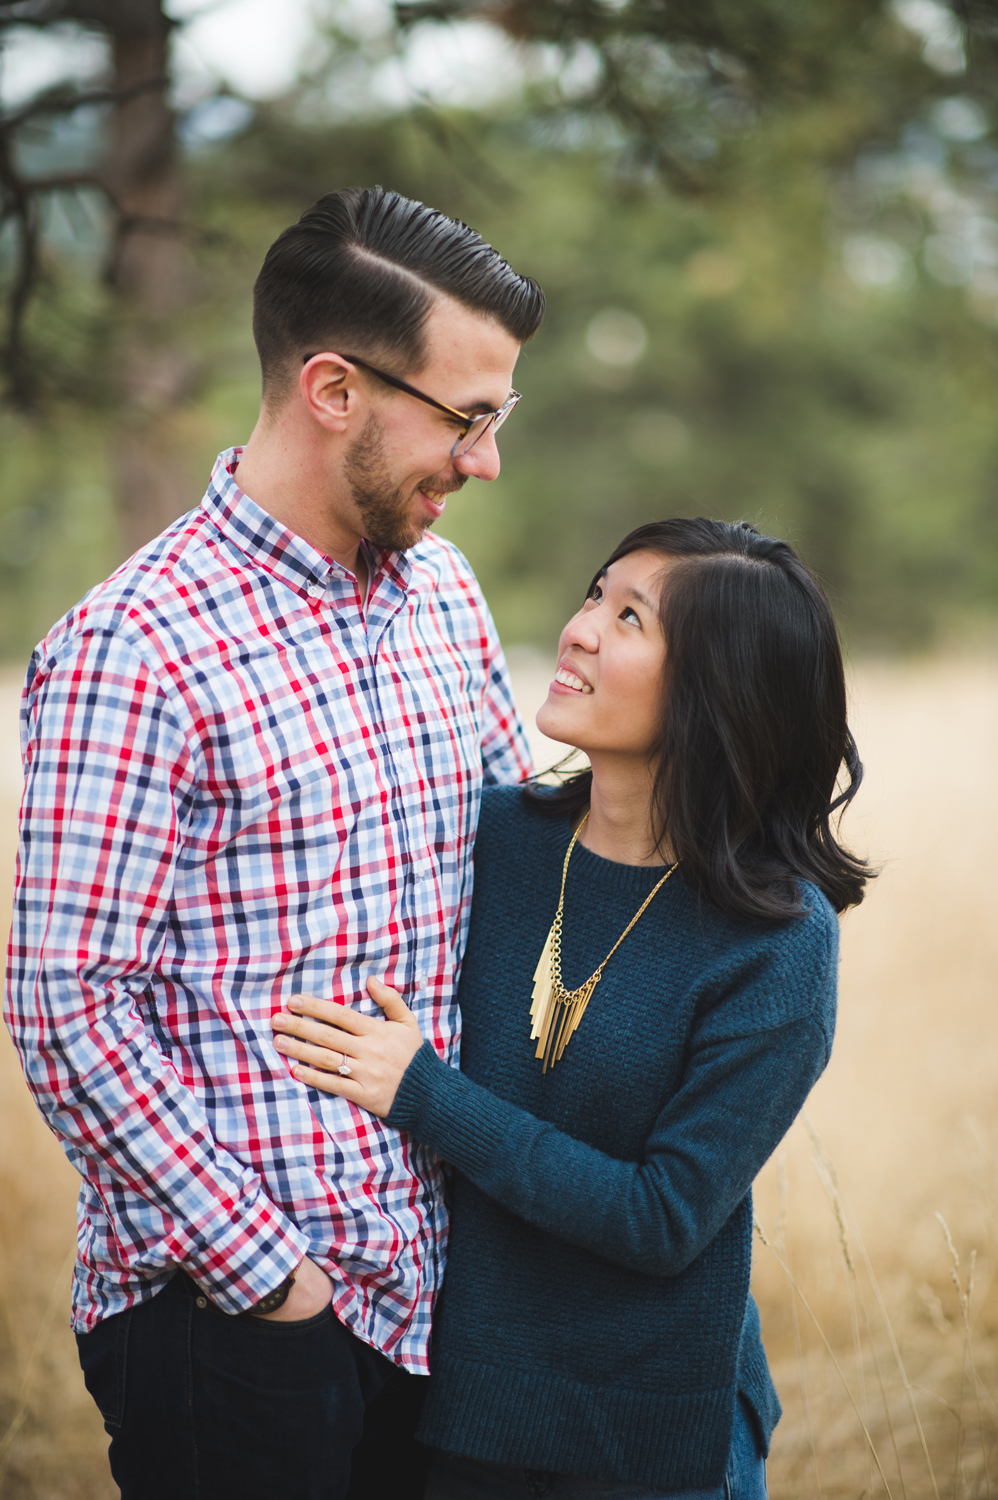 TiffanyandMark_Engaged_0003_squarespace.jpg